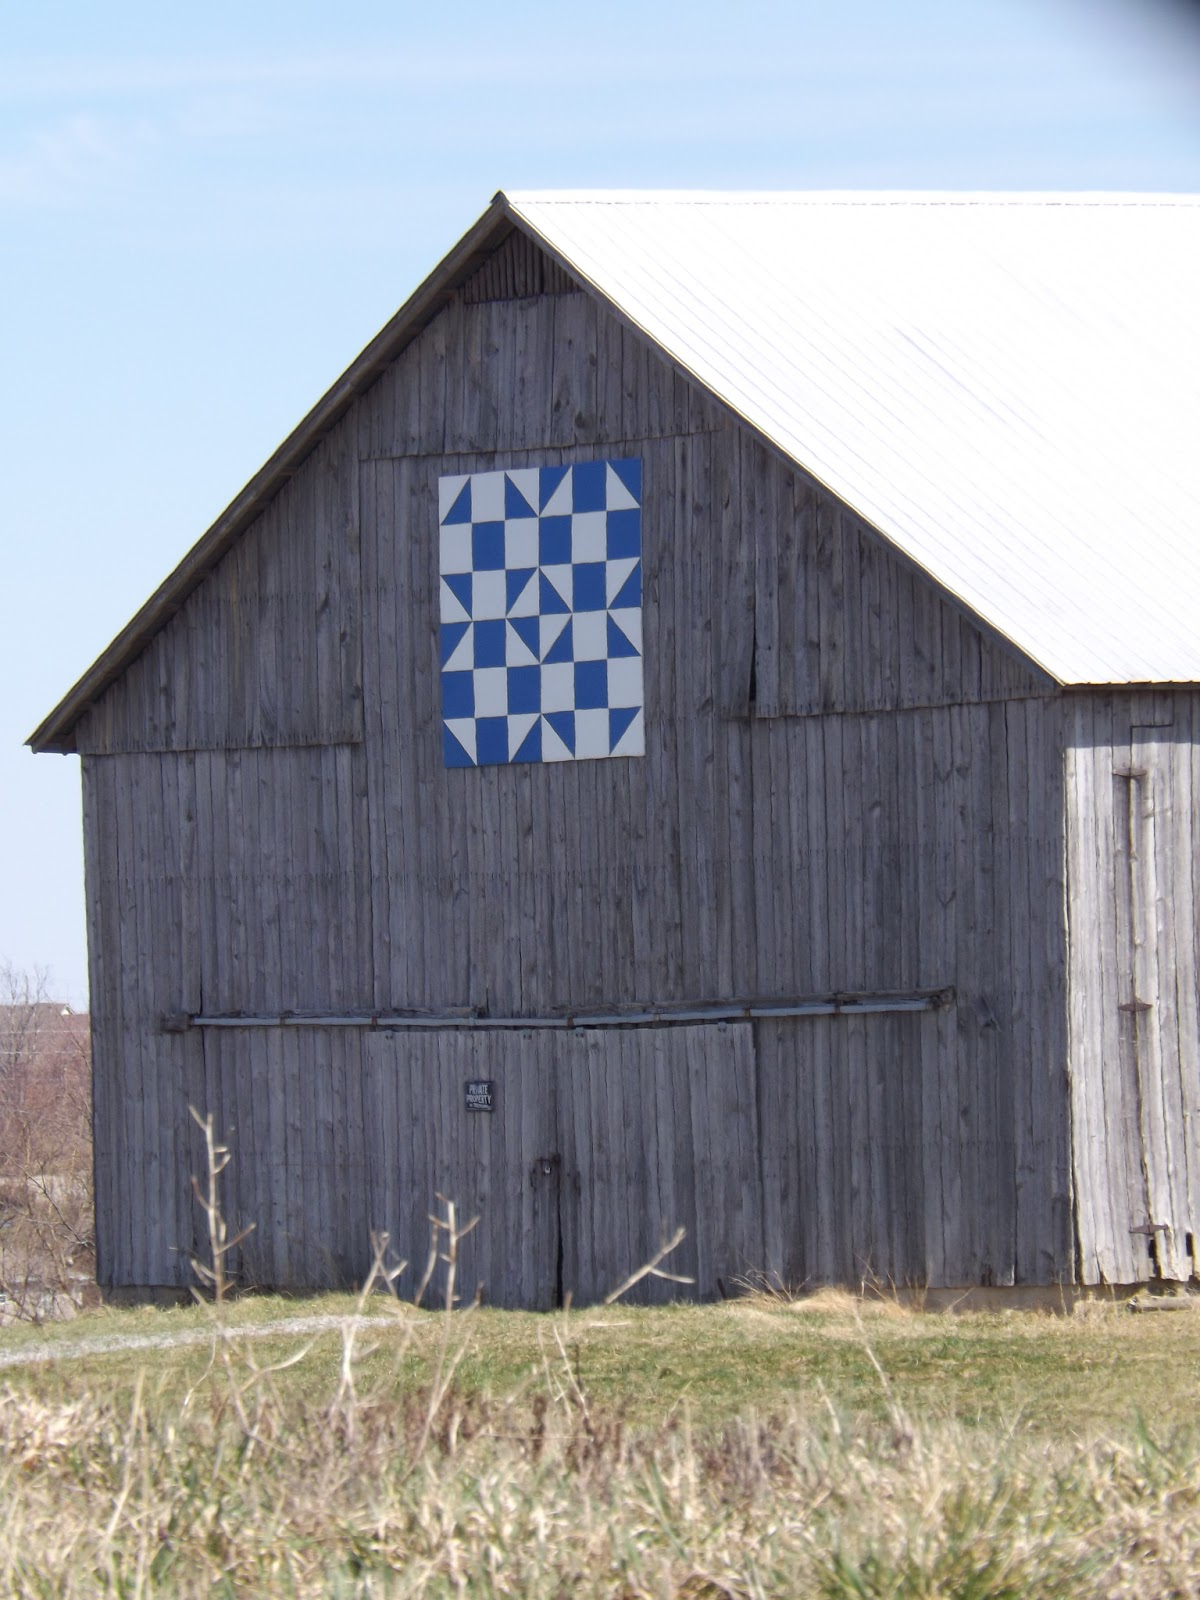 Quilt Patterns On Barns In Ky : Barn Quilts and the American Quilt Trail: Spring Comes to Kentucky!